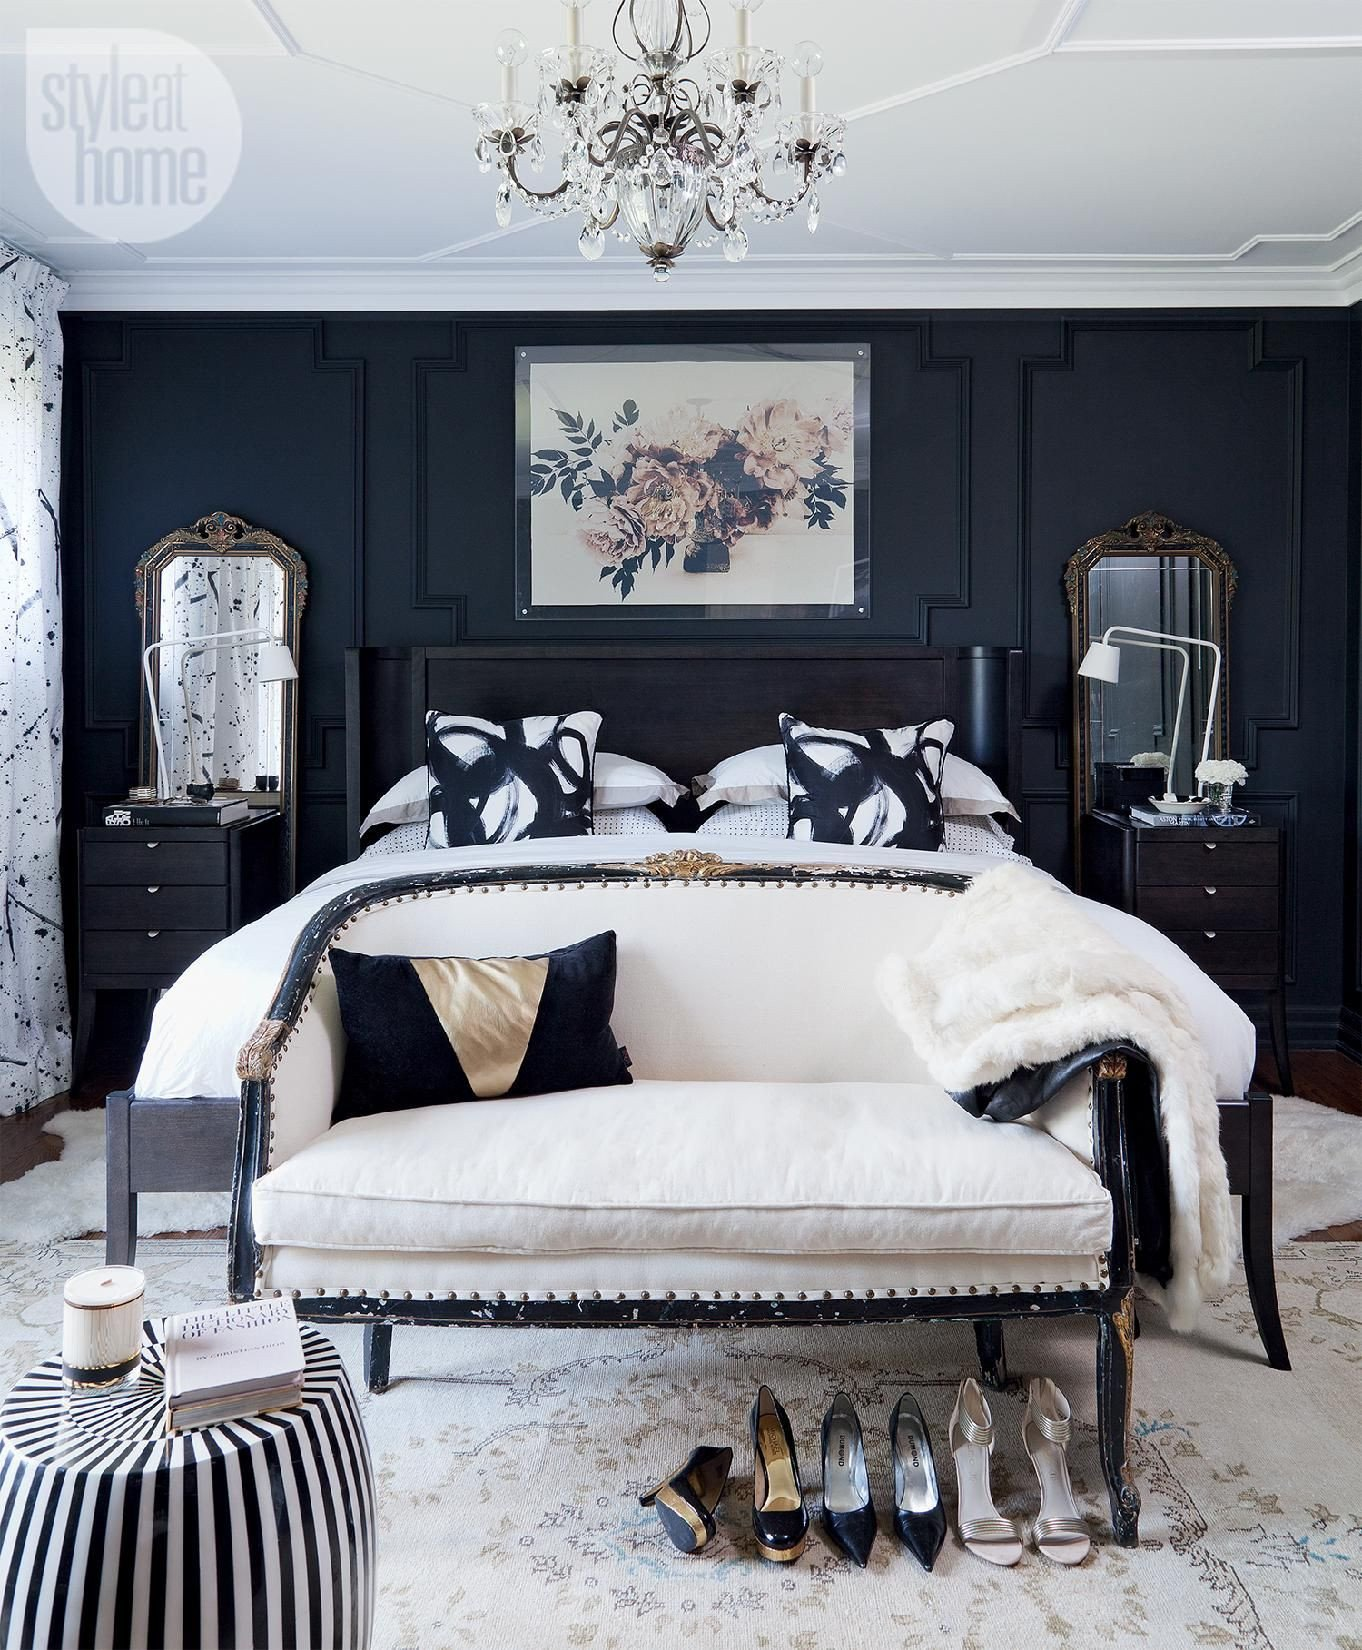 Black Bedroom Side Table Elegant Style at Home Christine Dovey S Bedroom Shop This Look